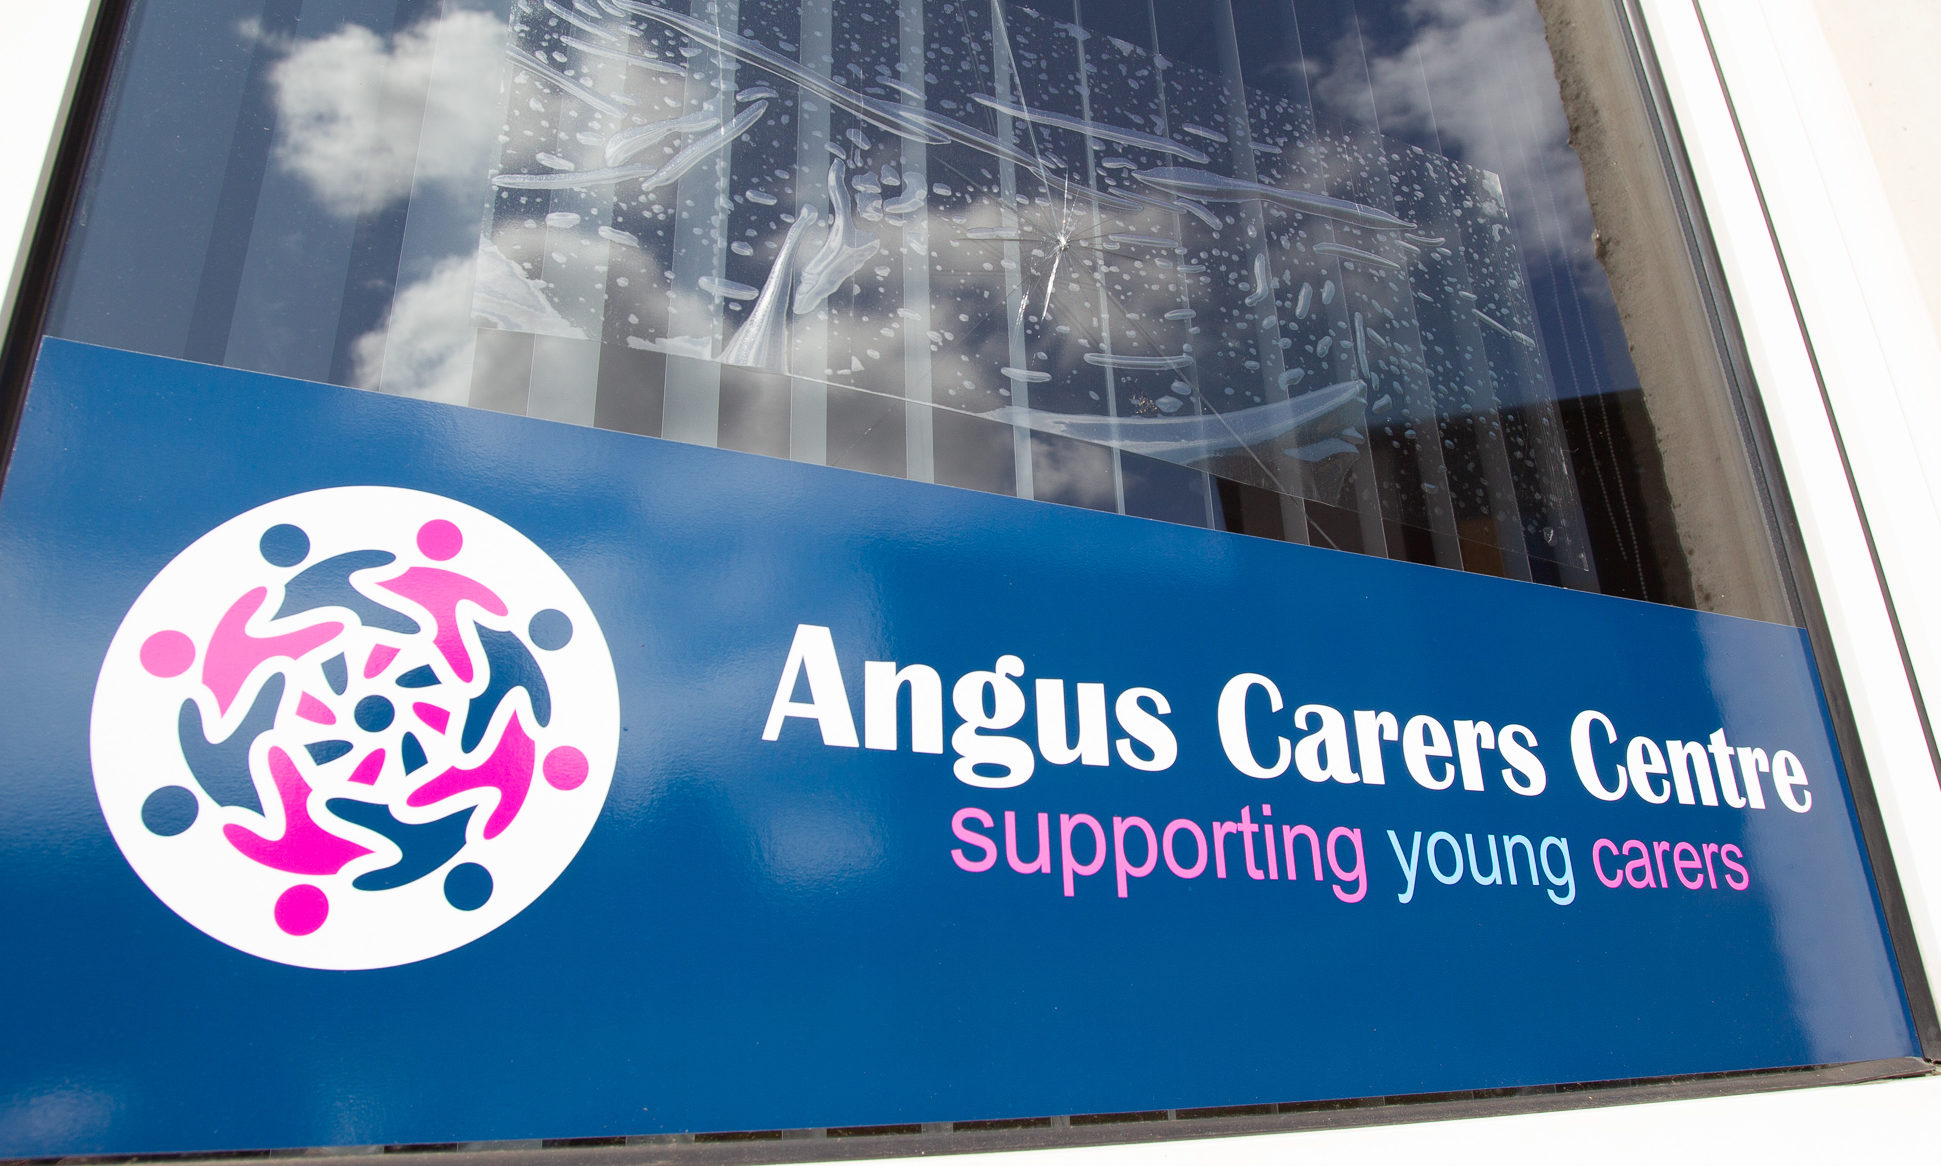 Angus Carers Centre